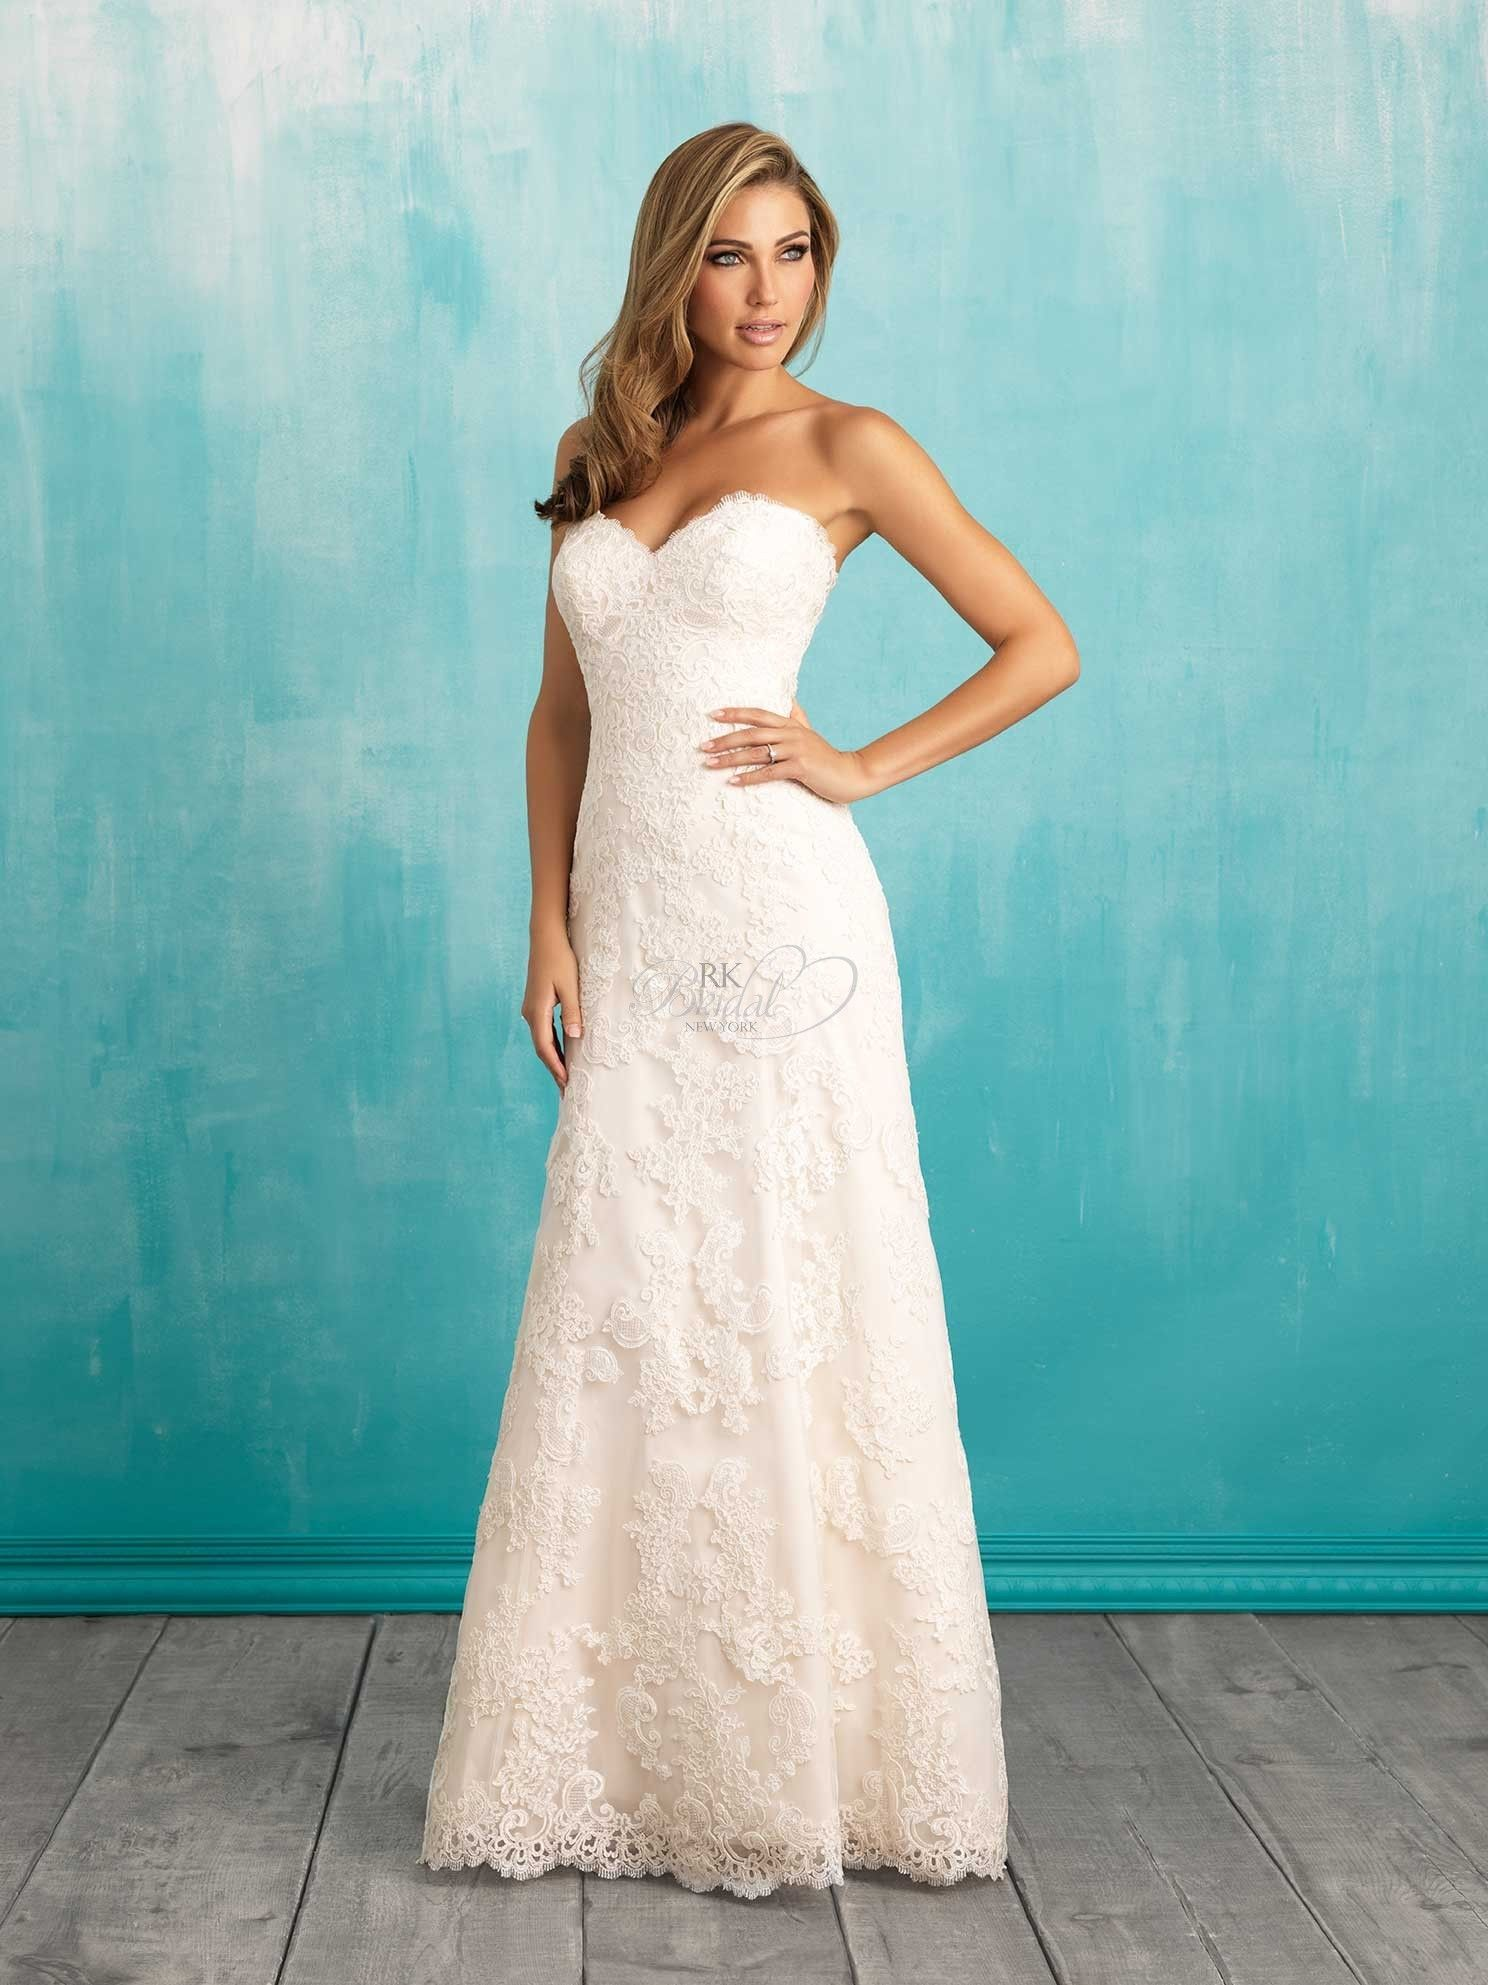 RK Bridal - Strapless sweetheart neckline, modified aline. Buttons ...